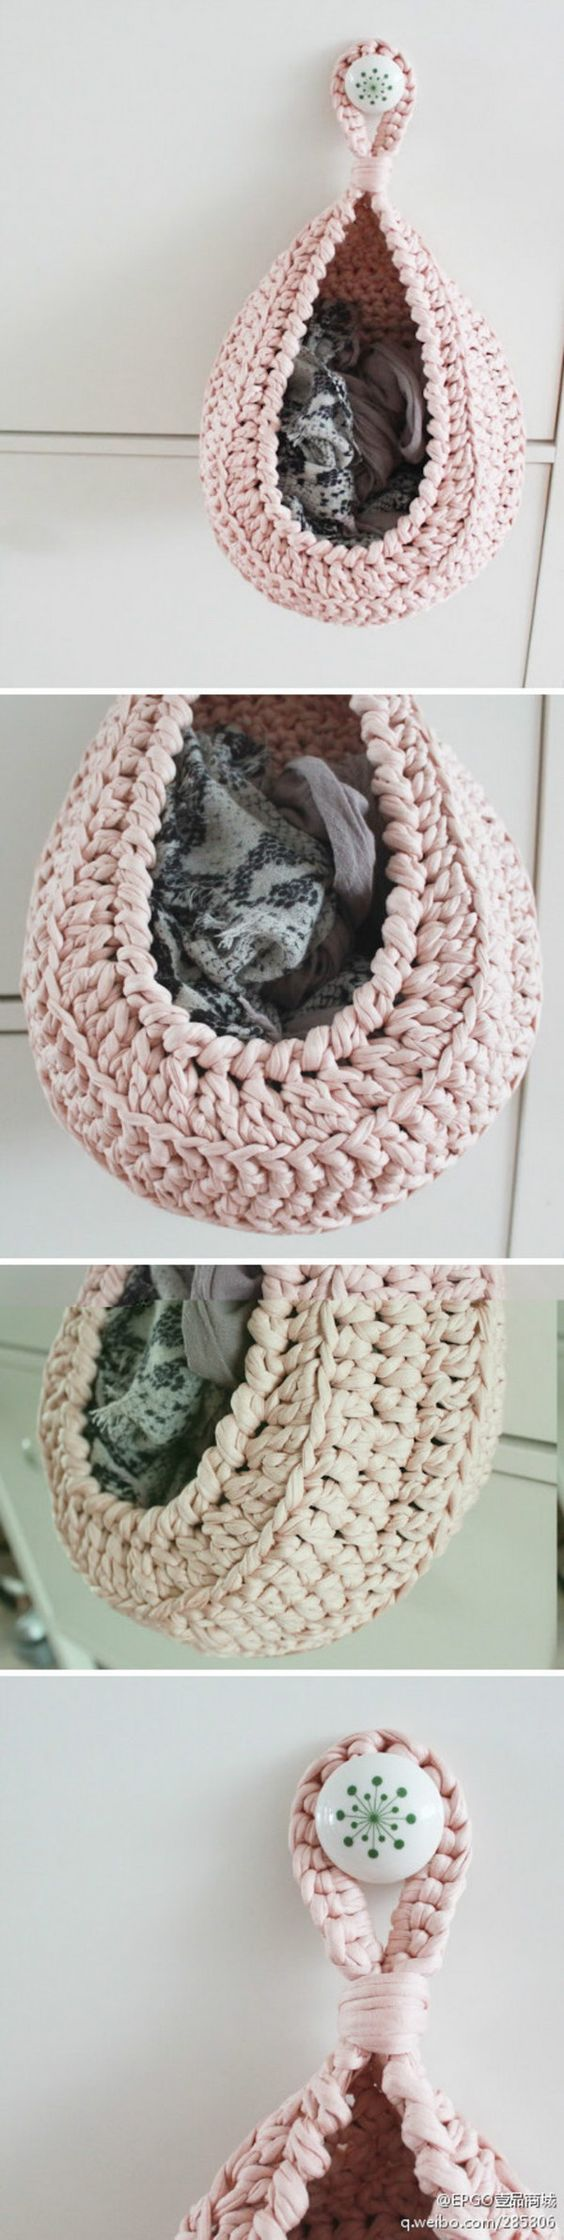 Crochet Towel Holder Free Pattern: